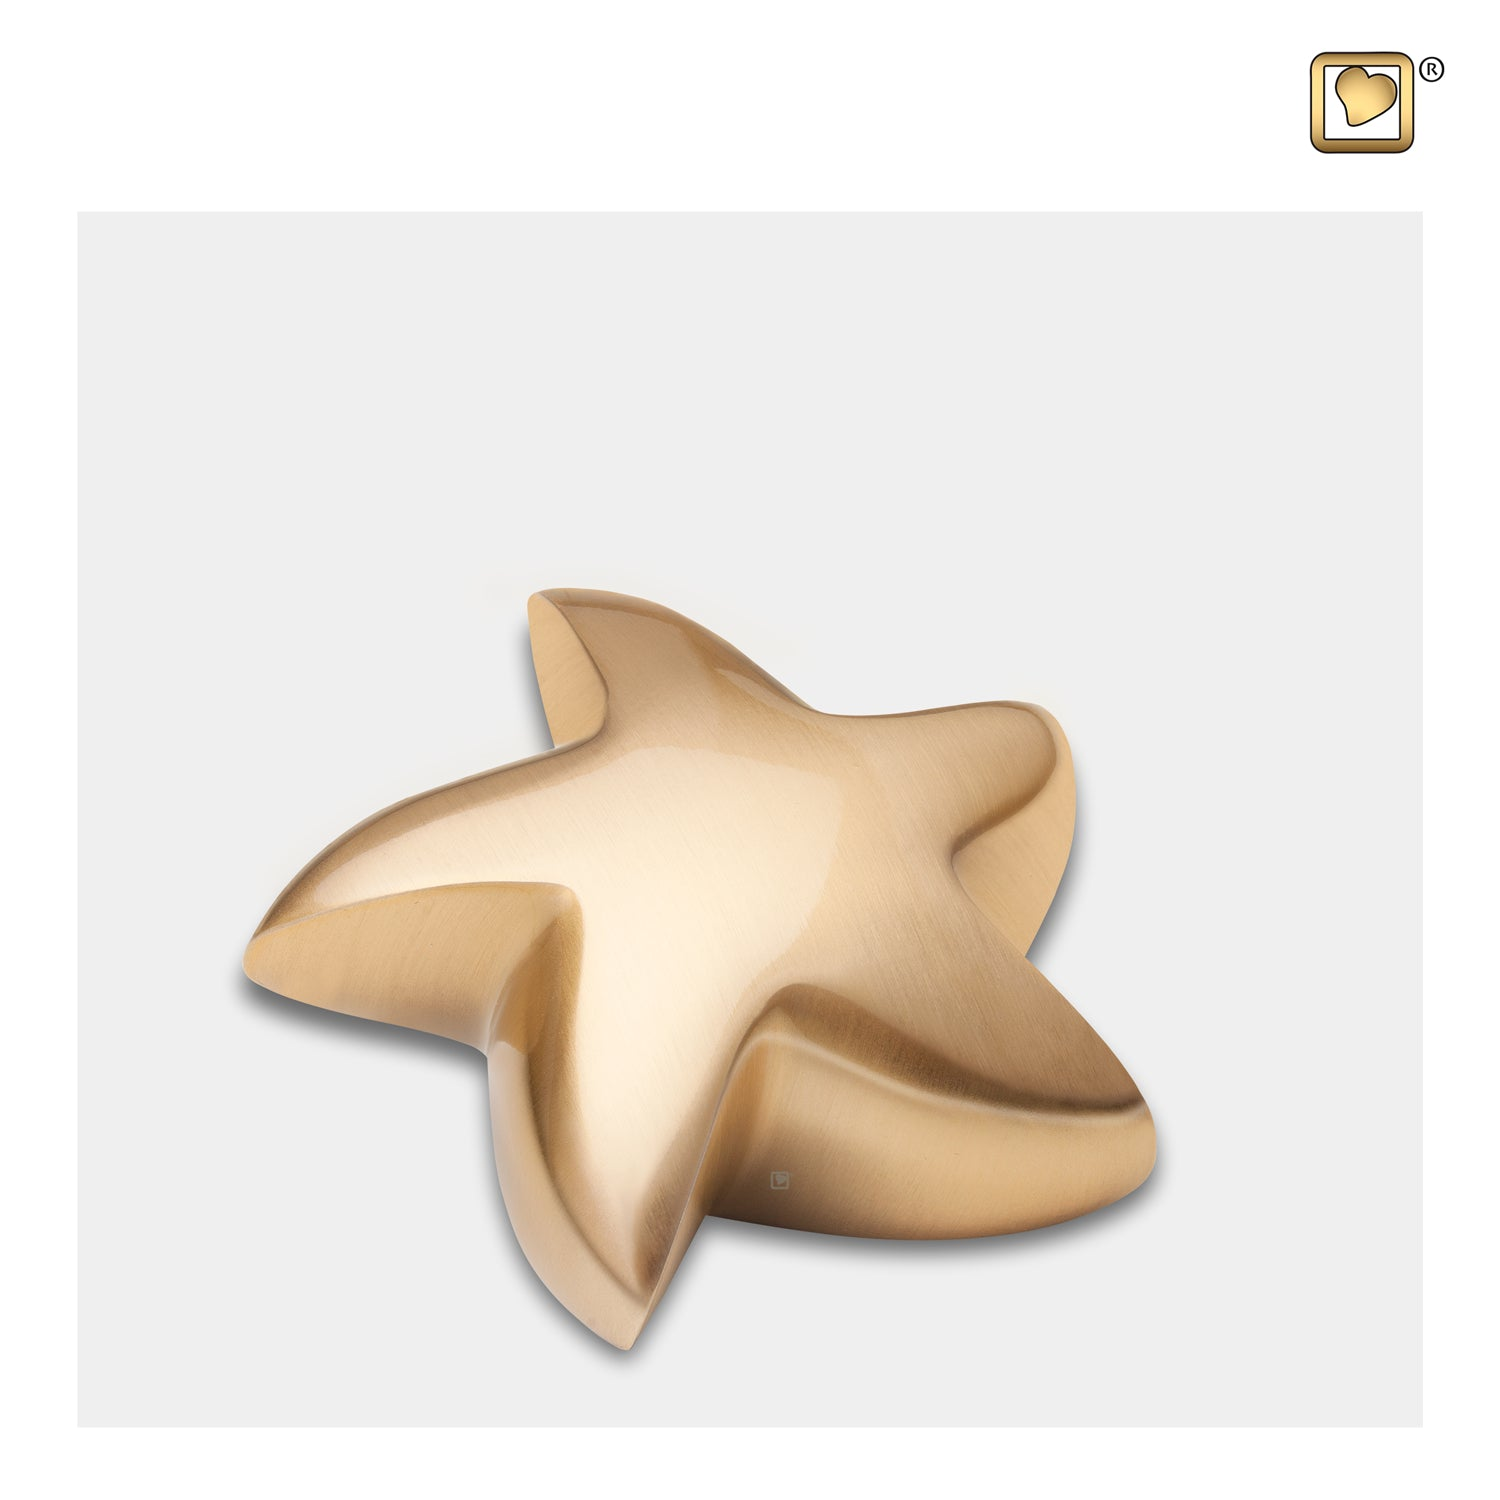 Star Brushed Gold Cremation Urn